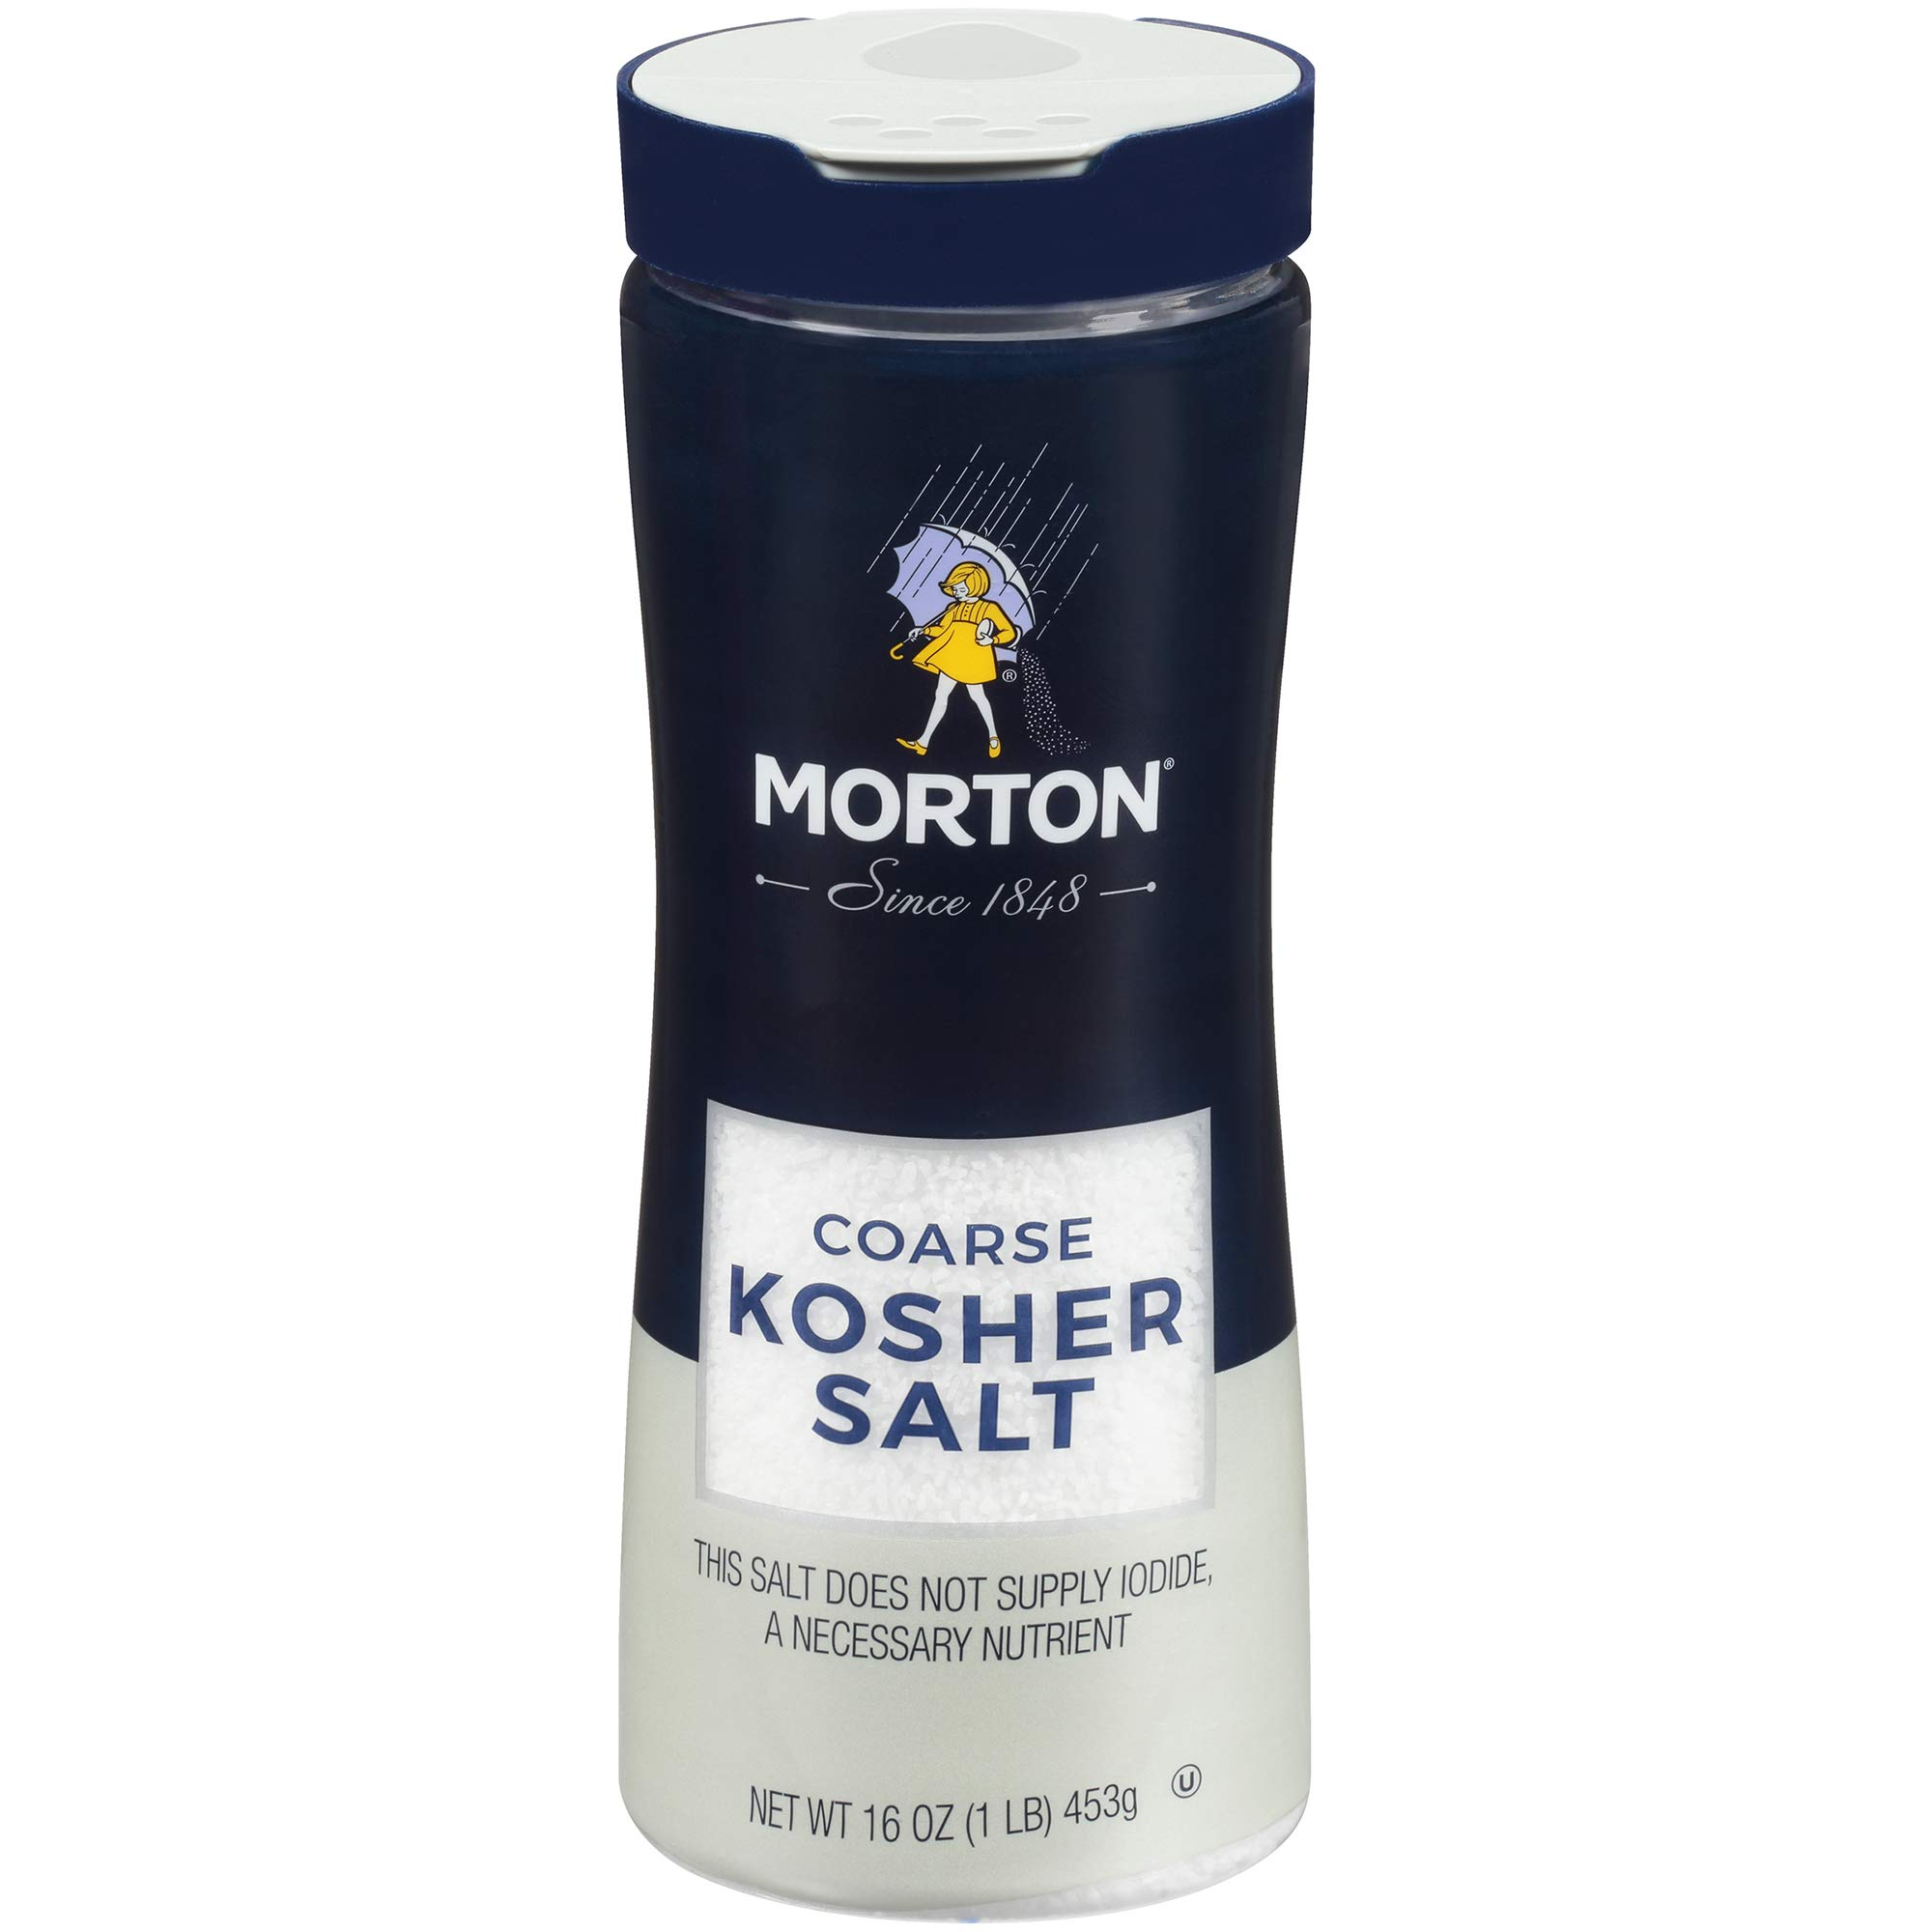 Morton Coarse Kosher Salt For every day Cooking, Grilling, Brining, and as a Margarita Salt Rimmer, 16 OZ Canister (Pack of 12) by Morton